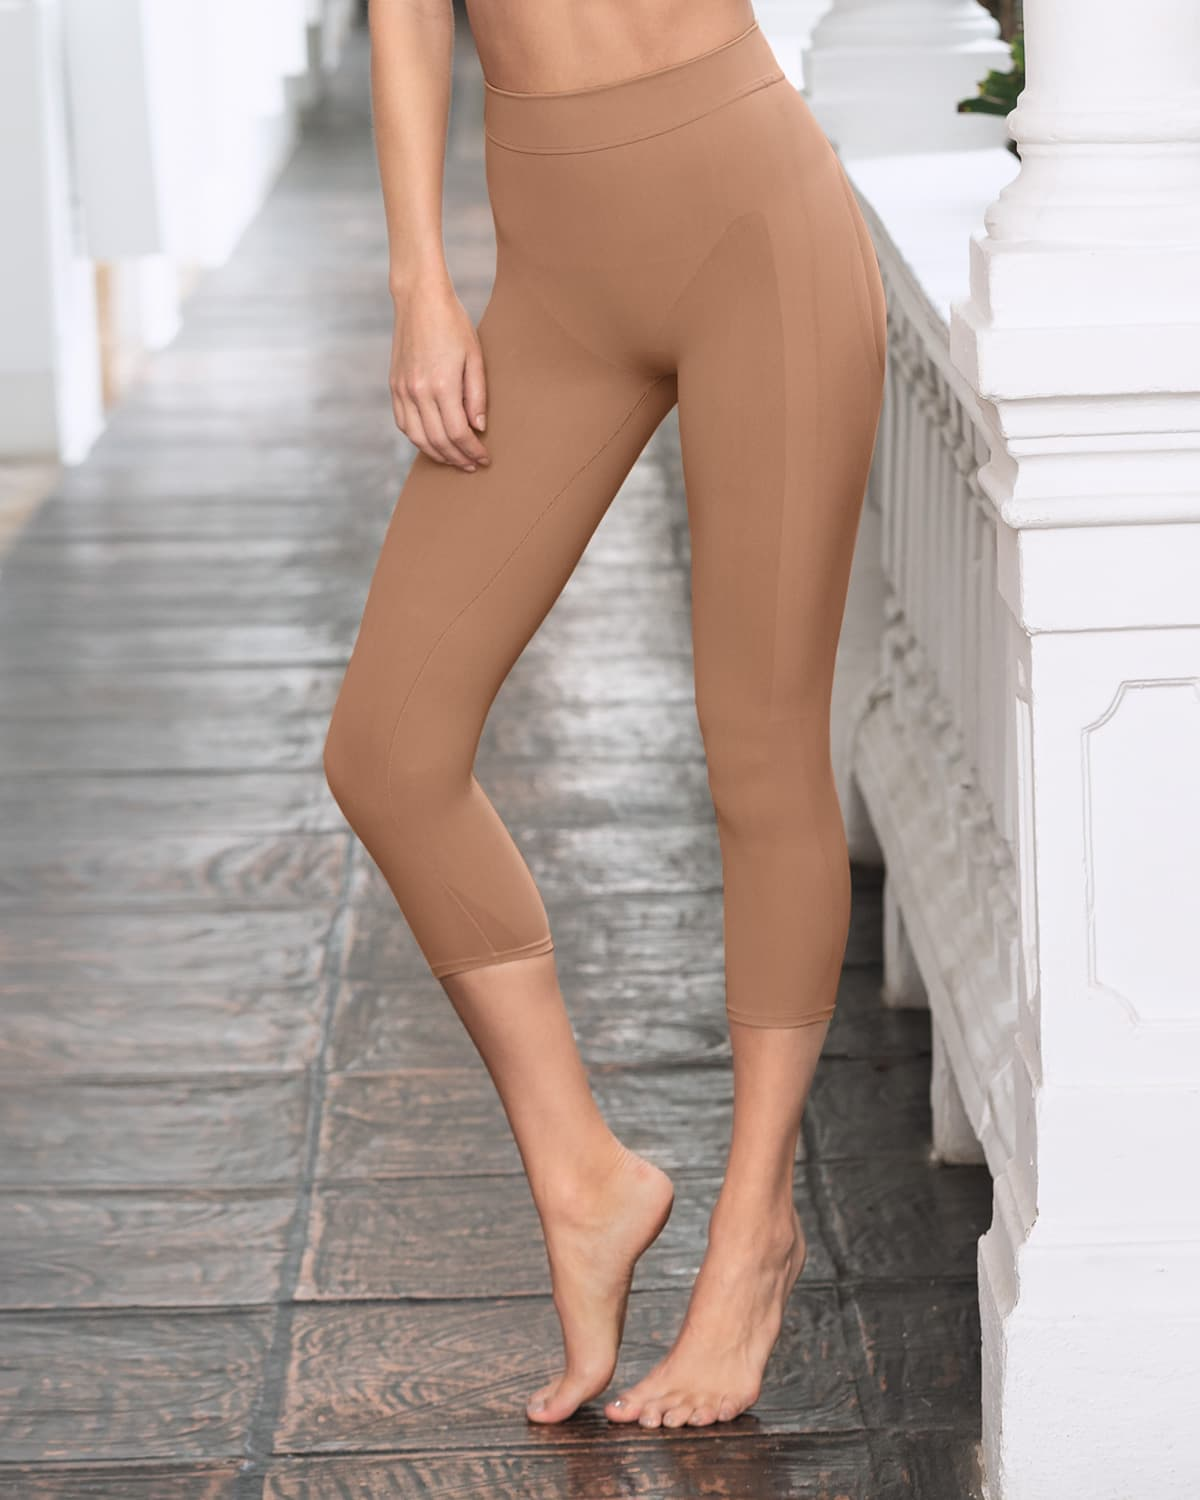 Leonisa Invisible Leggings Shaper L Beige Without Lace | eBay